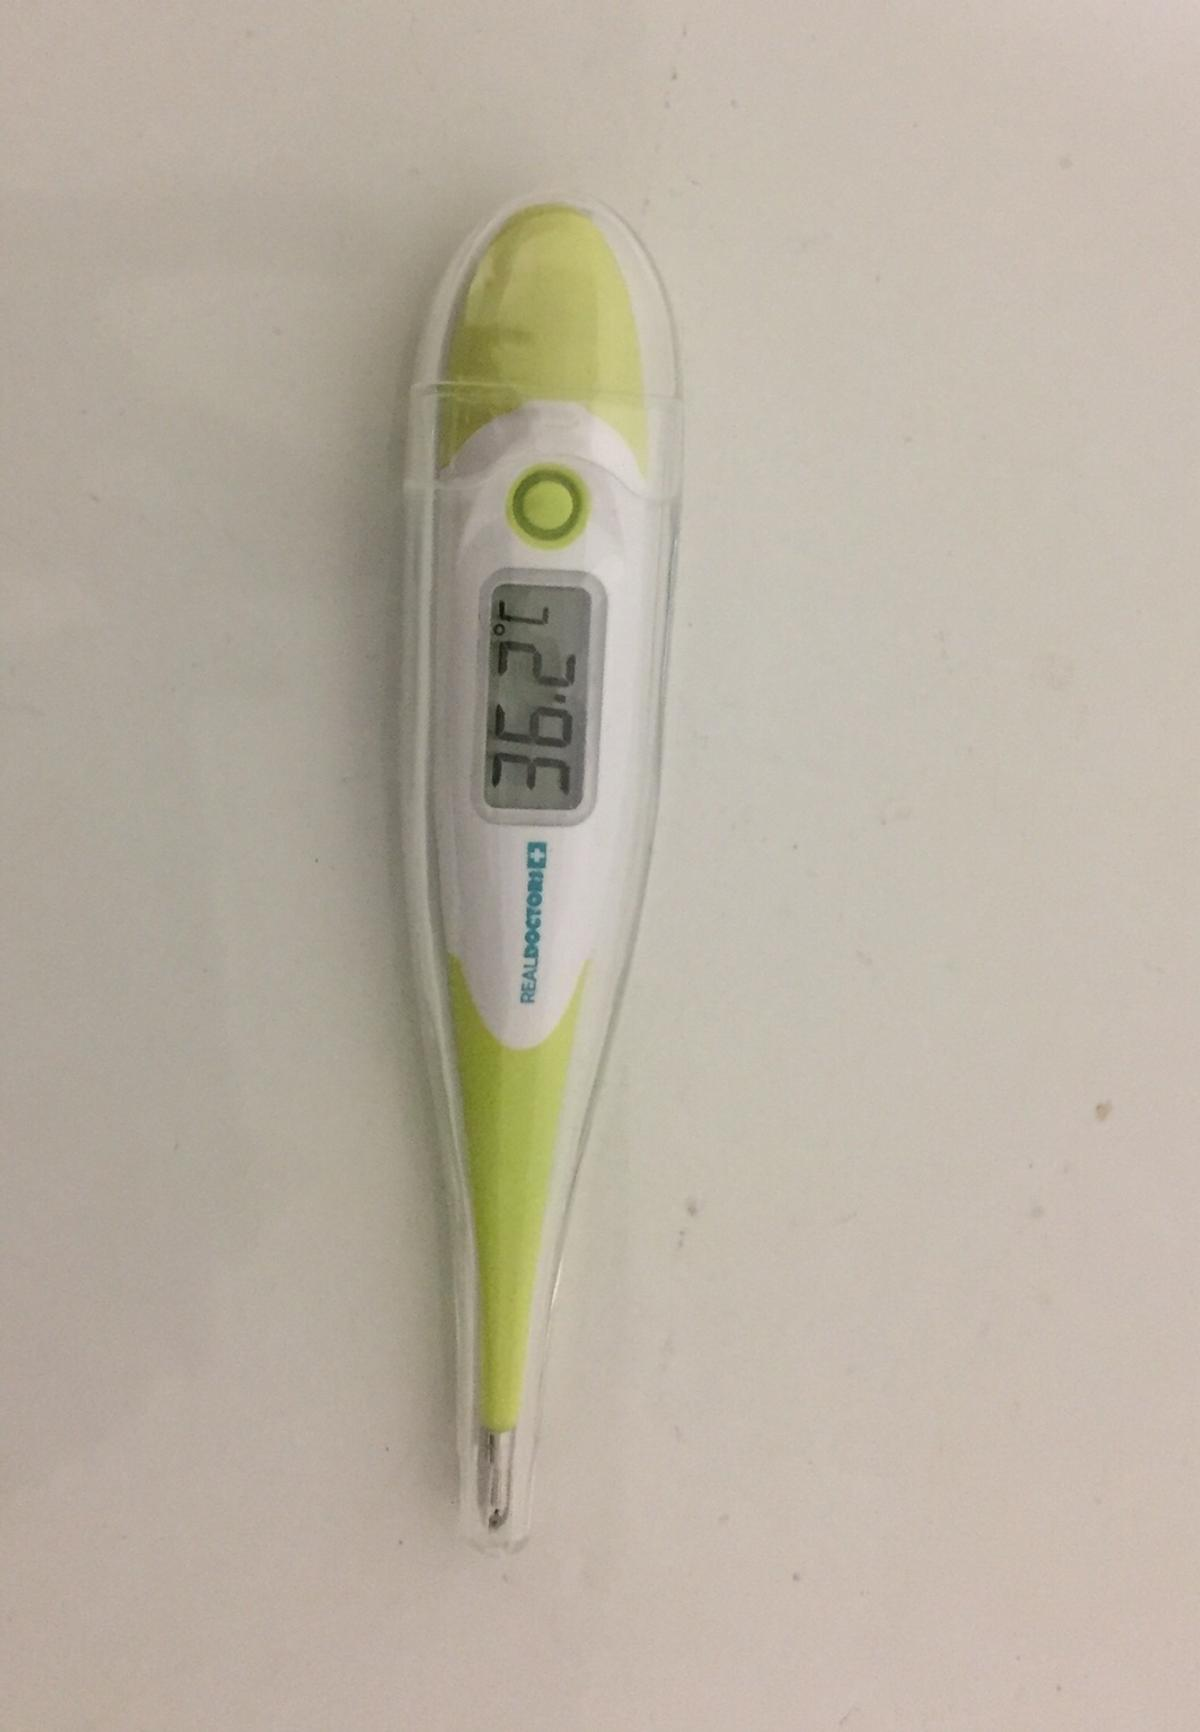 Real doctors digital thermometer check your temperature in this horrifying time with this virus going around check your body temperature before going around the elderly and venerable people